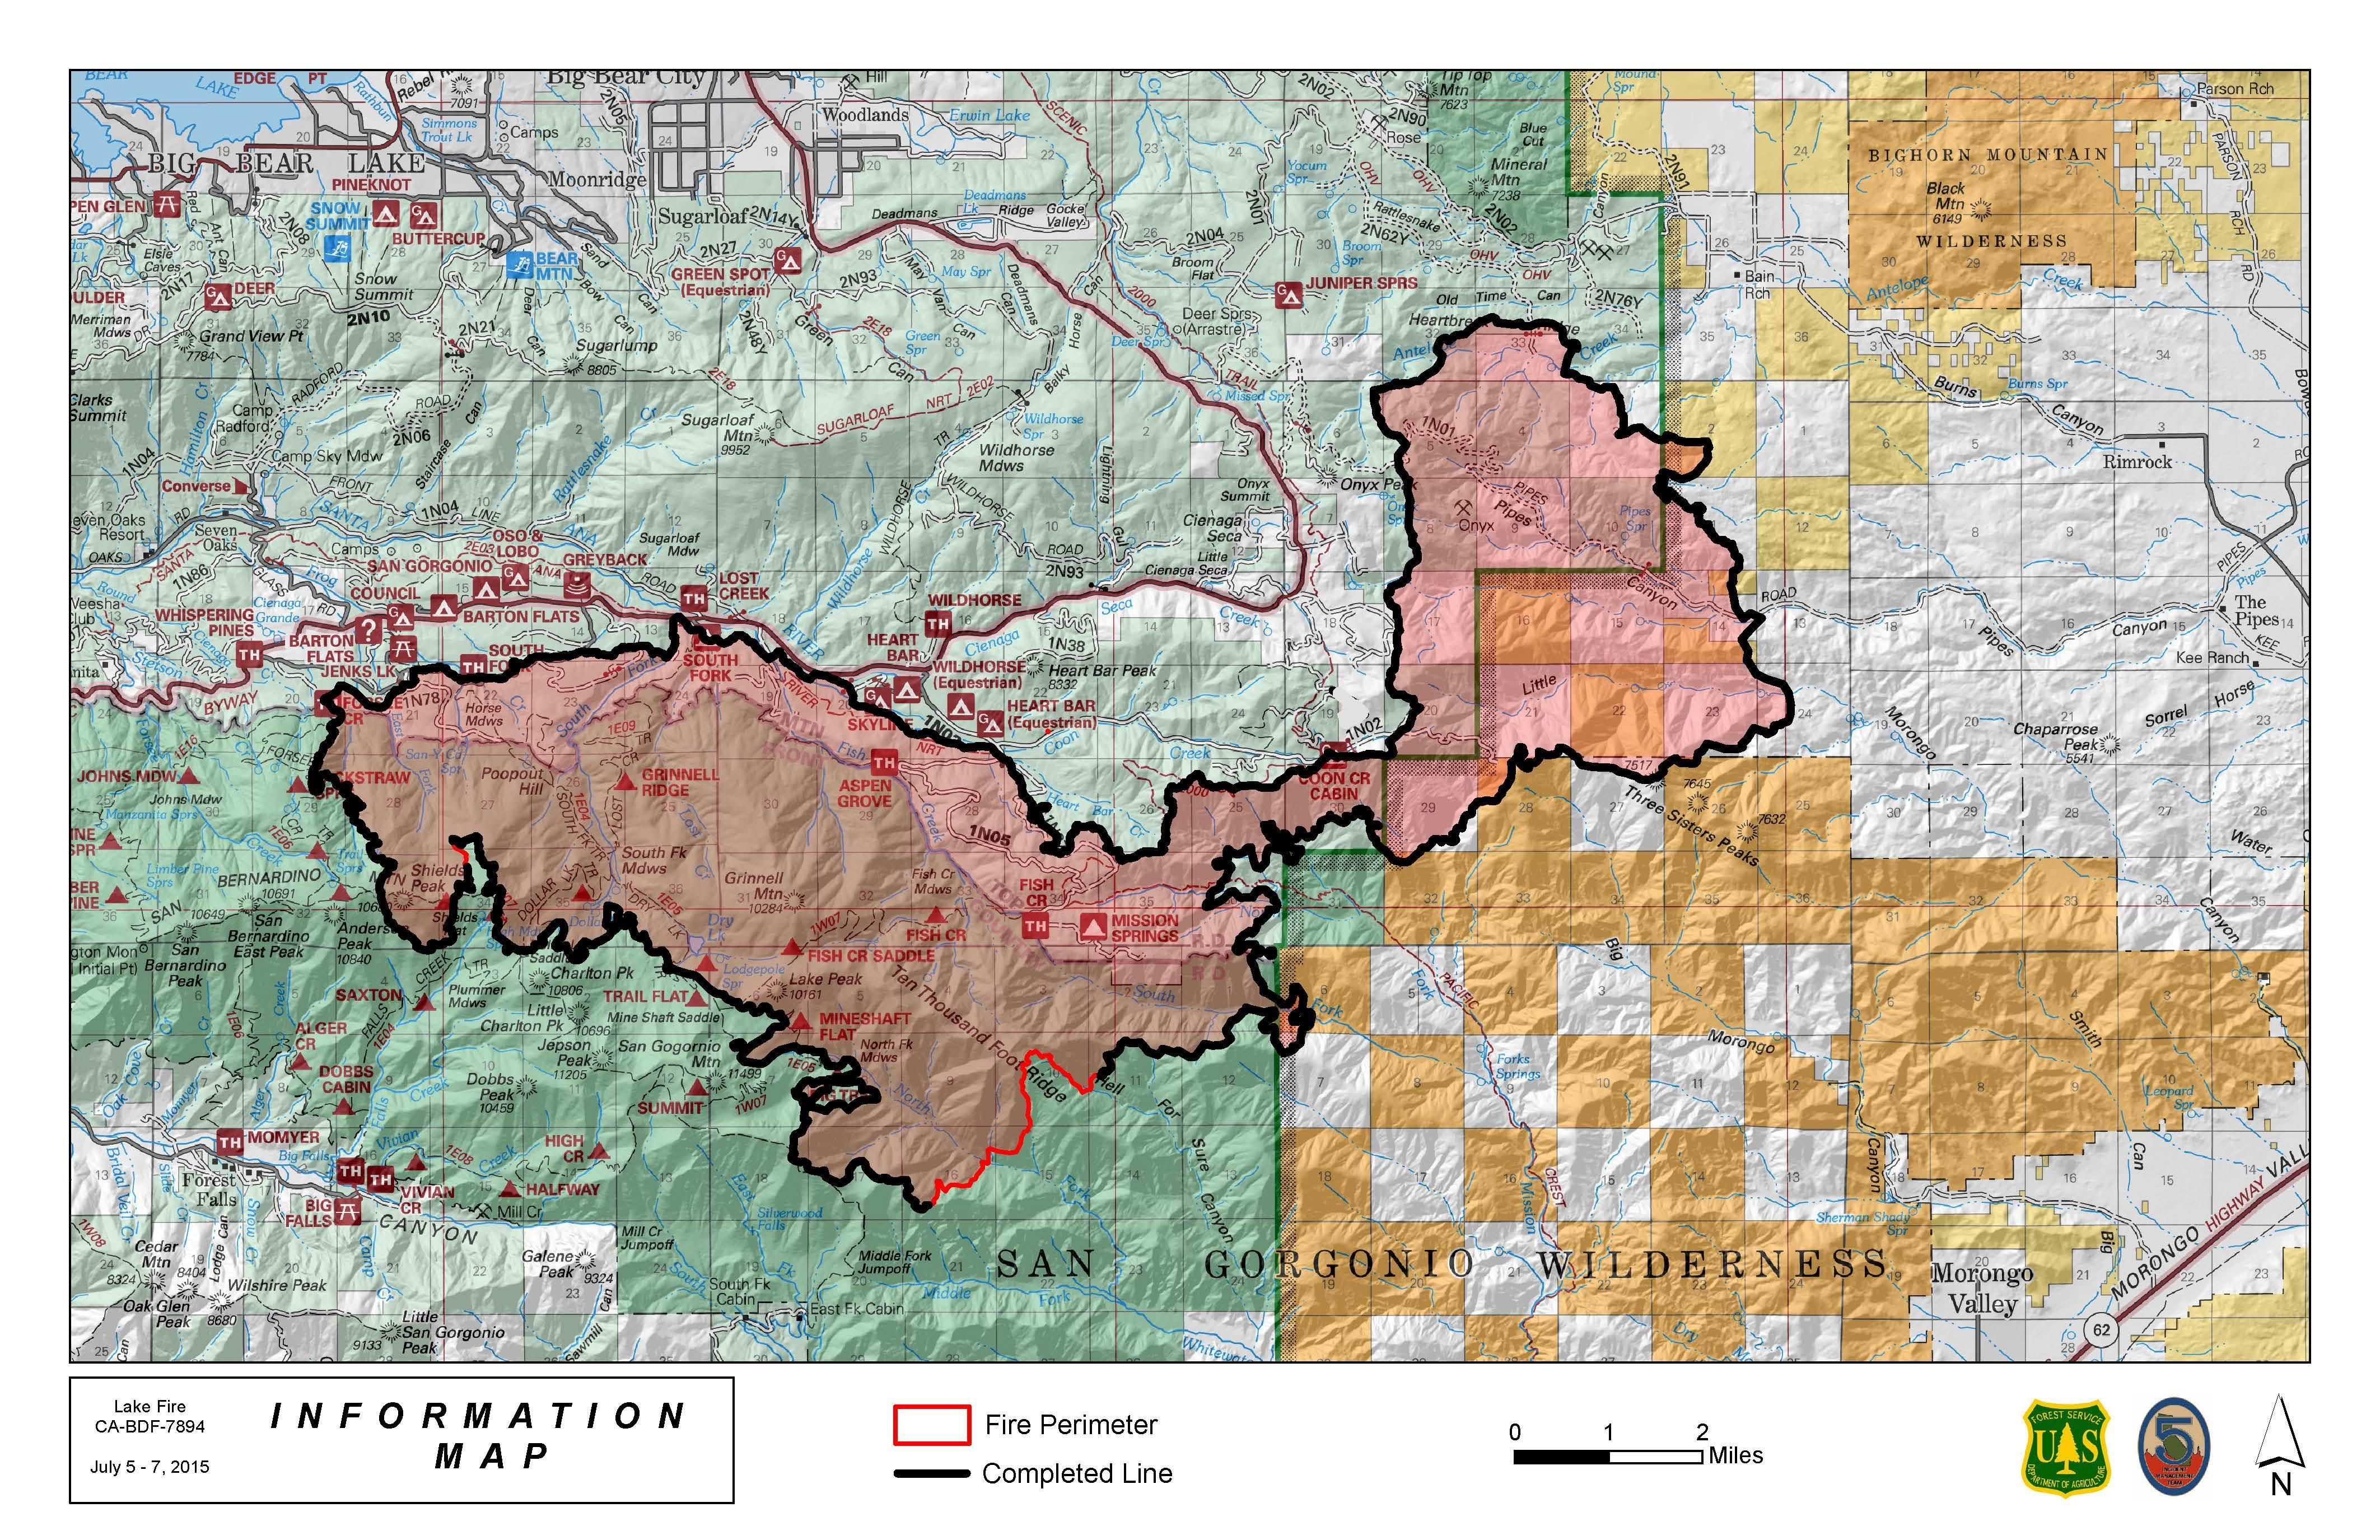 San Bernardino Mountains Lake Fire